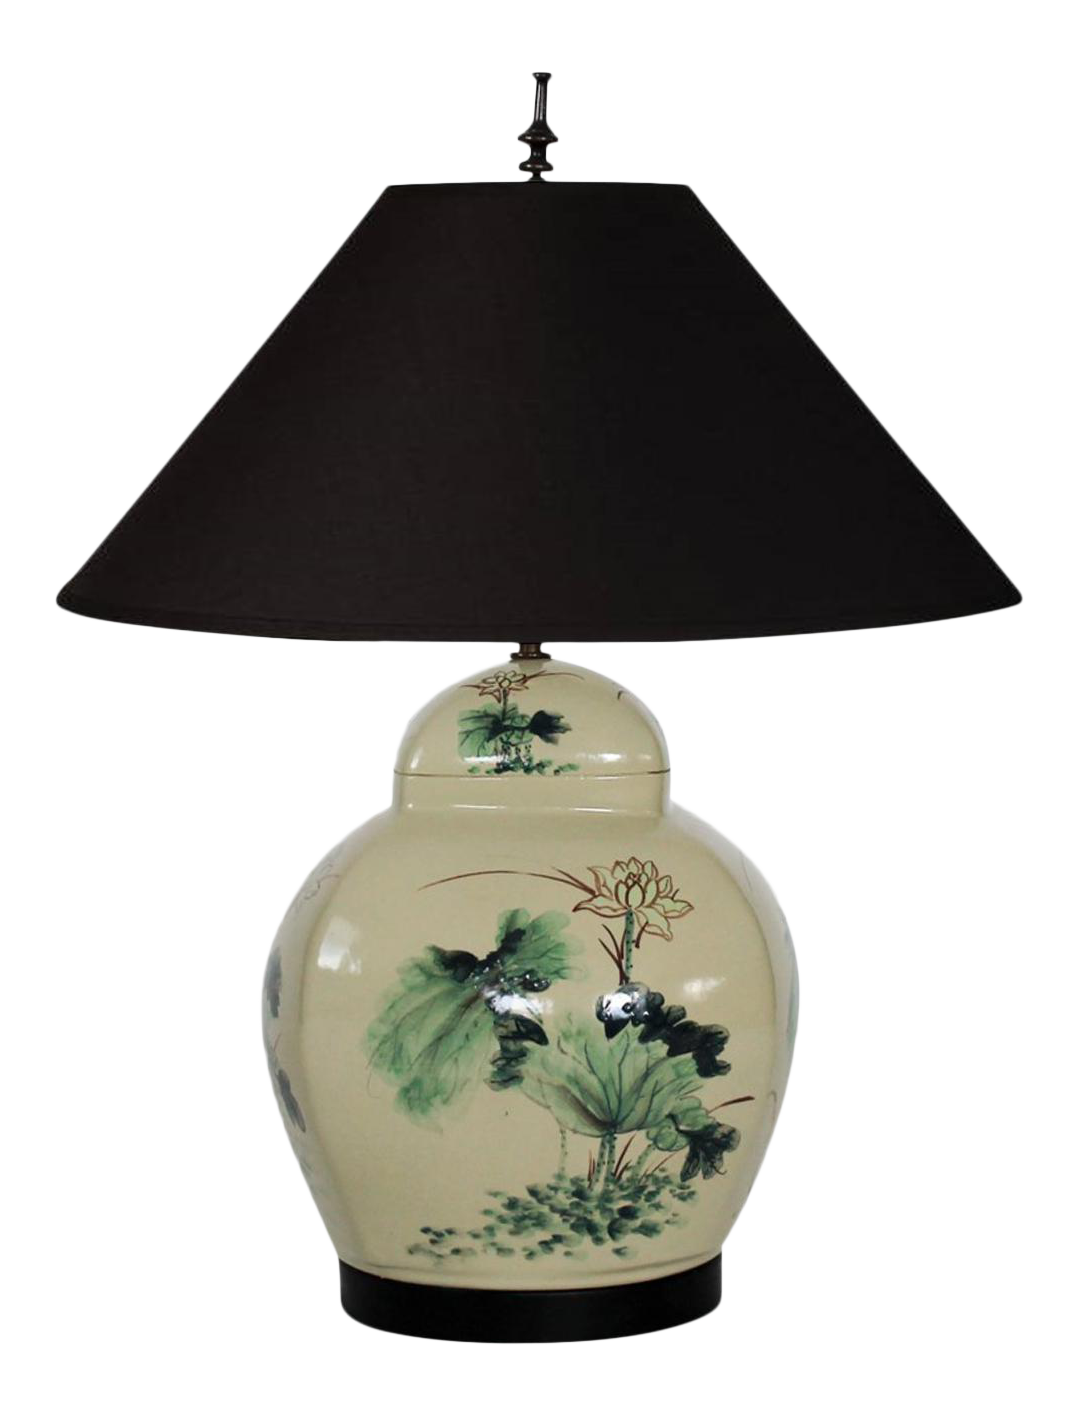 Merveilleux Vintage Asian Style Table Lamp By Chapman